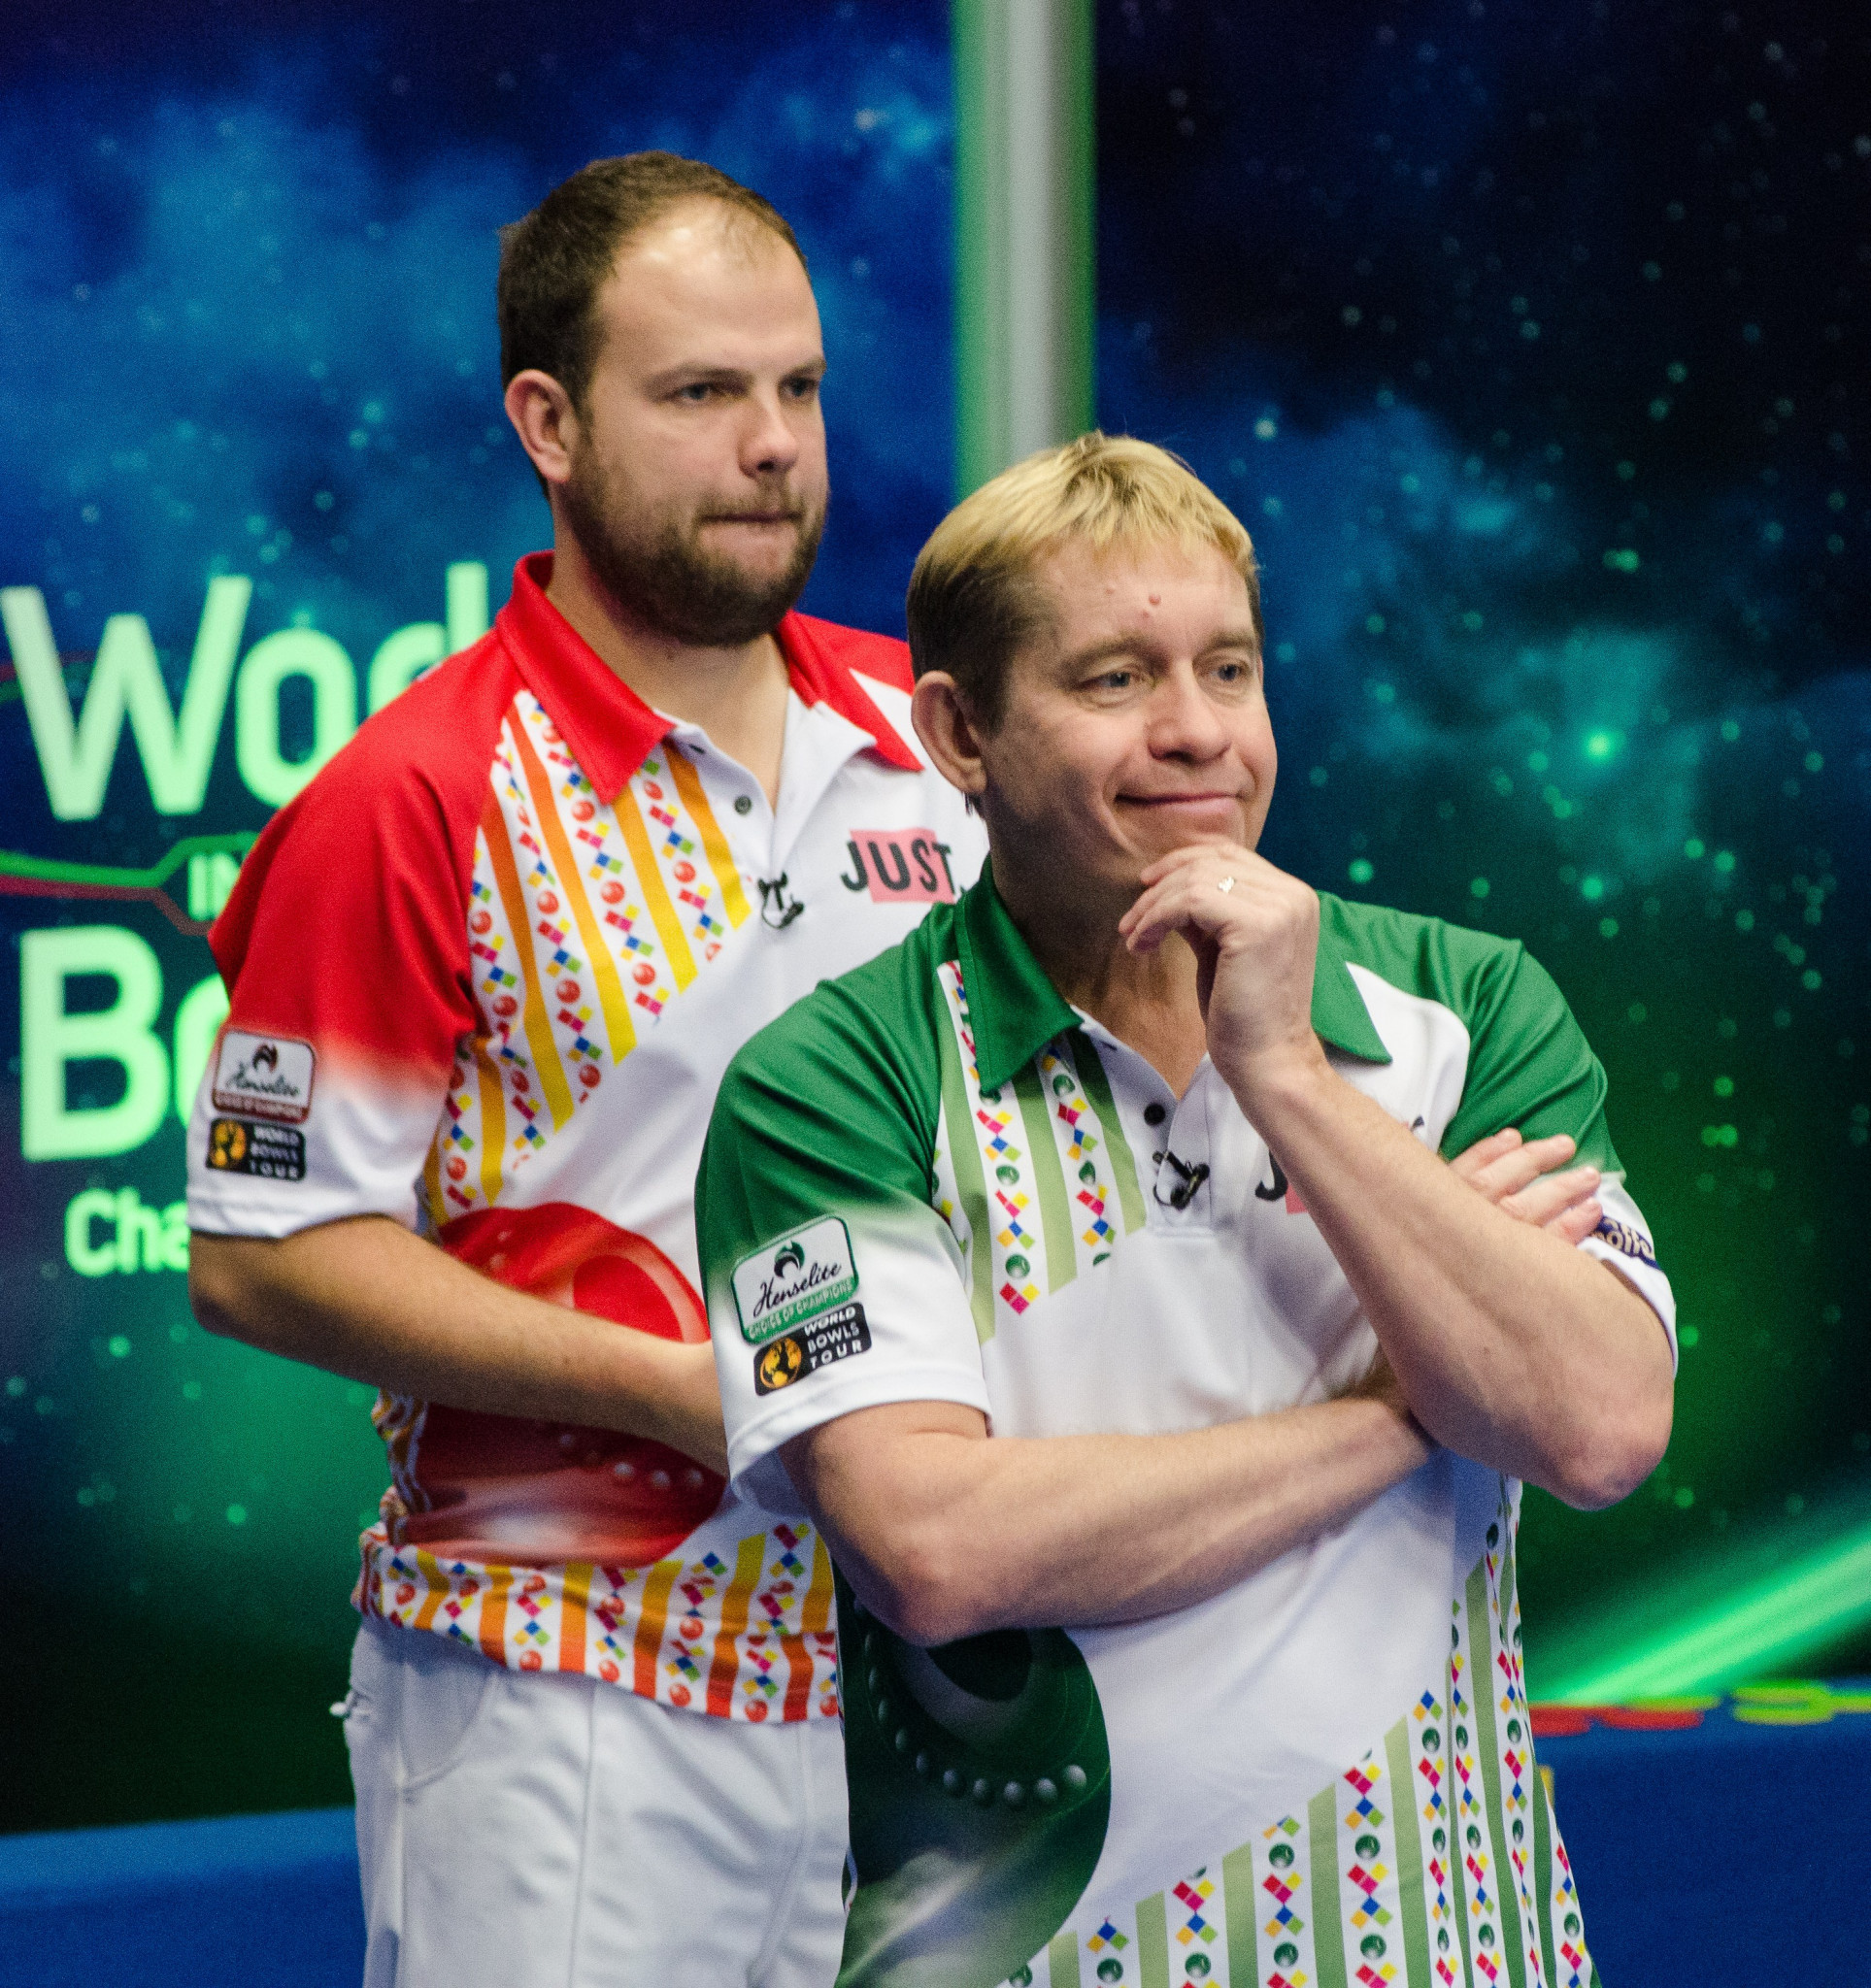 The men's pairs final saw Glasgow 2014 silver medallist face Jamie Chestney, in red, face world number one Greg Harlow, in green ©World Bowls Tour